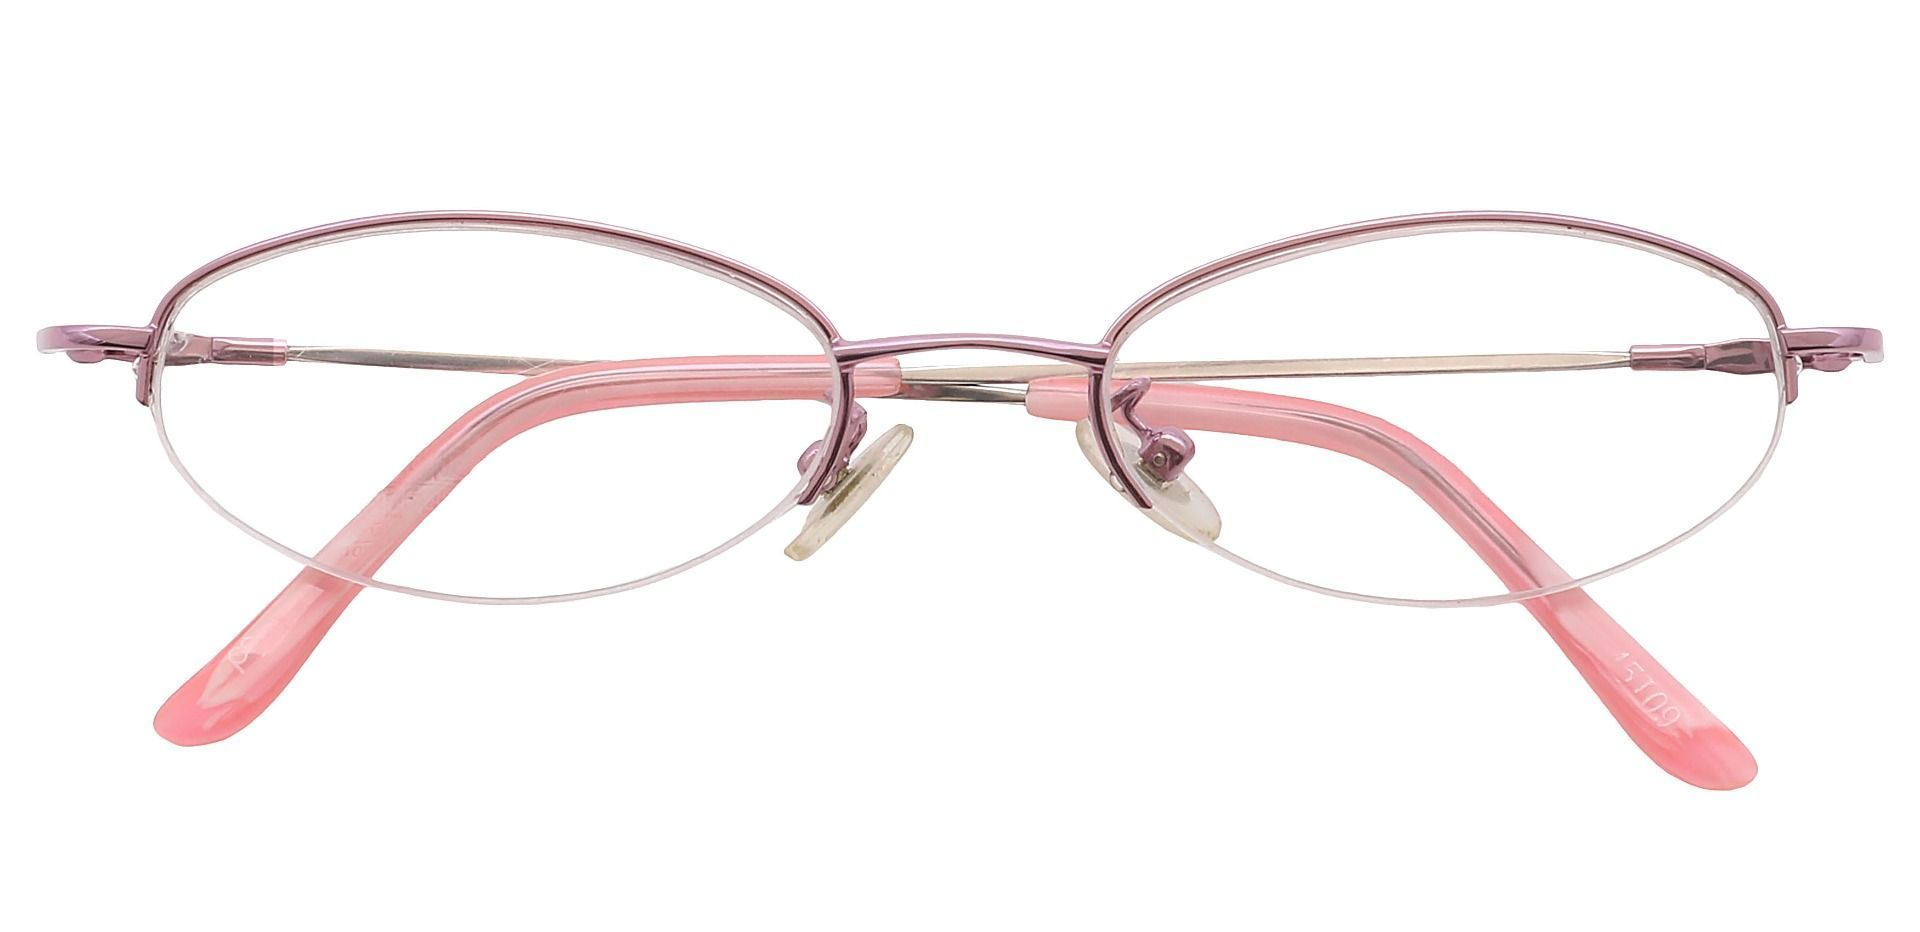 Union Oval Single Vision Glasses - Pink